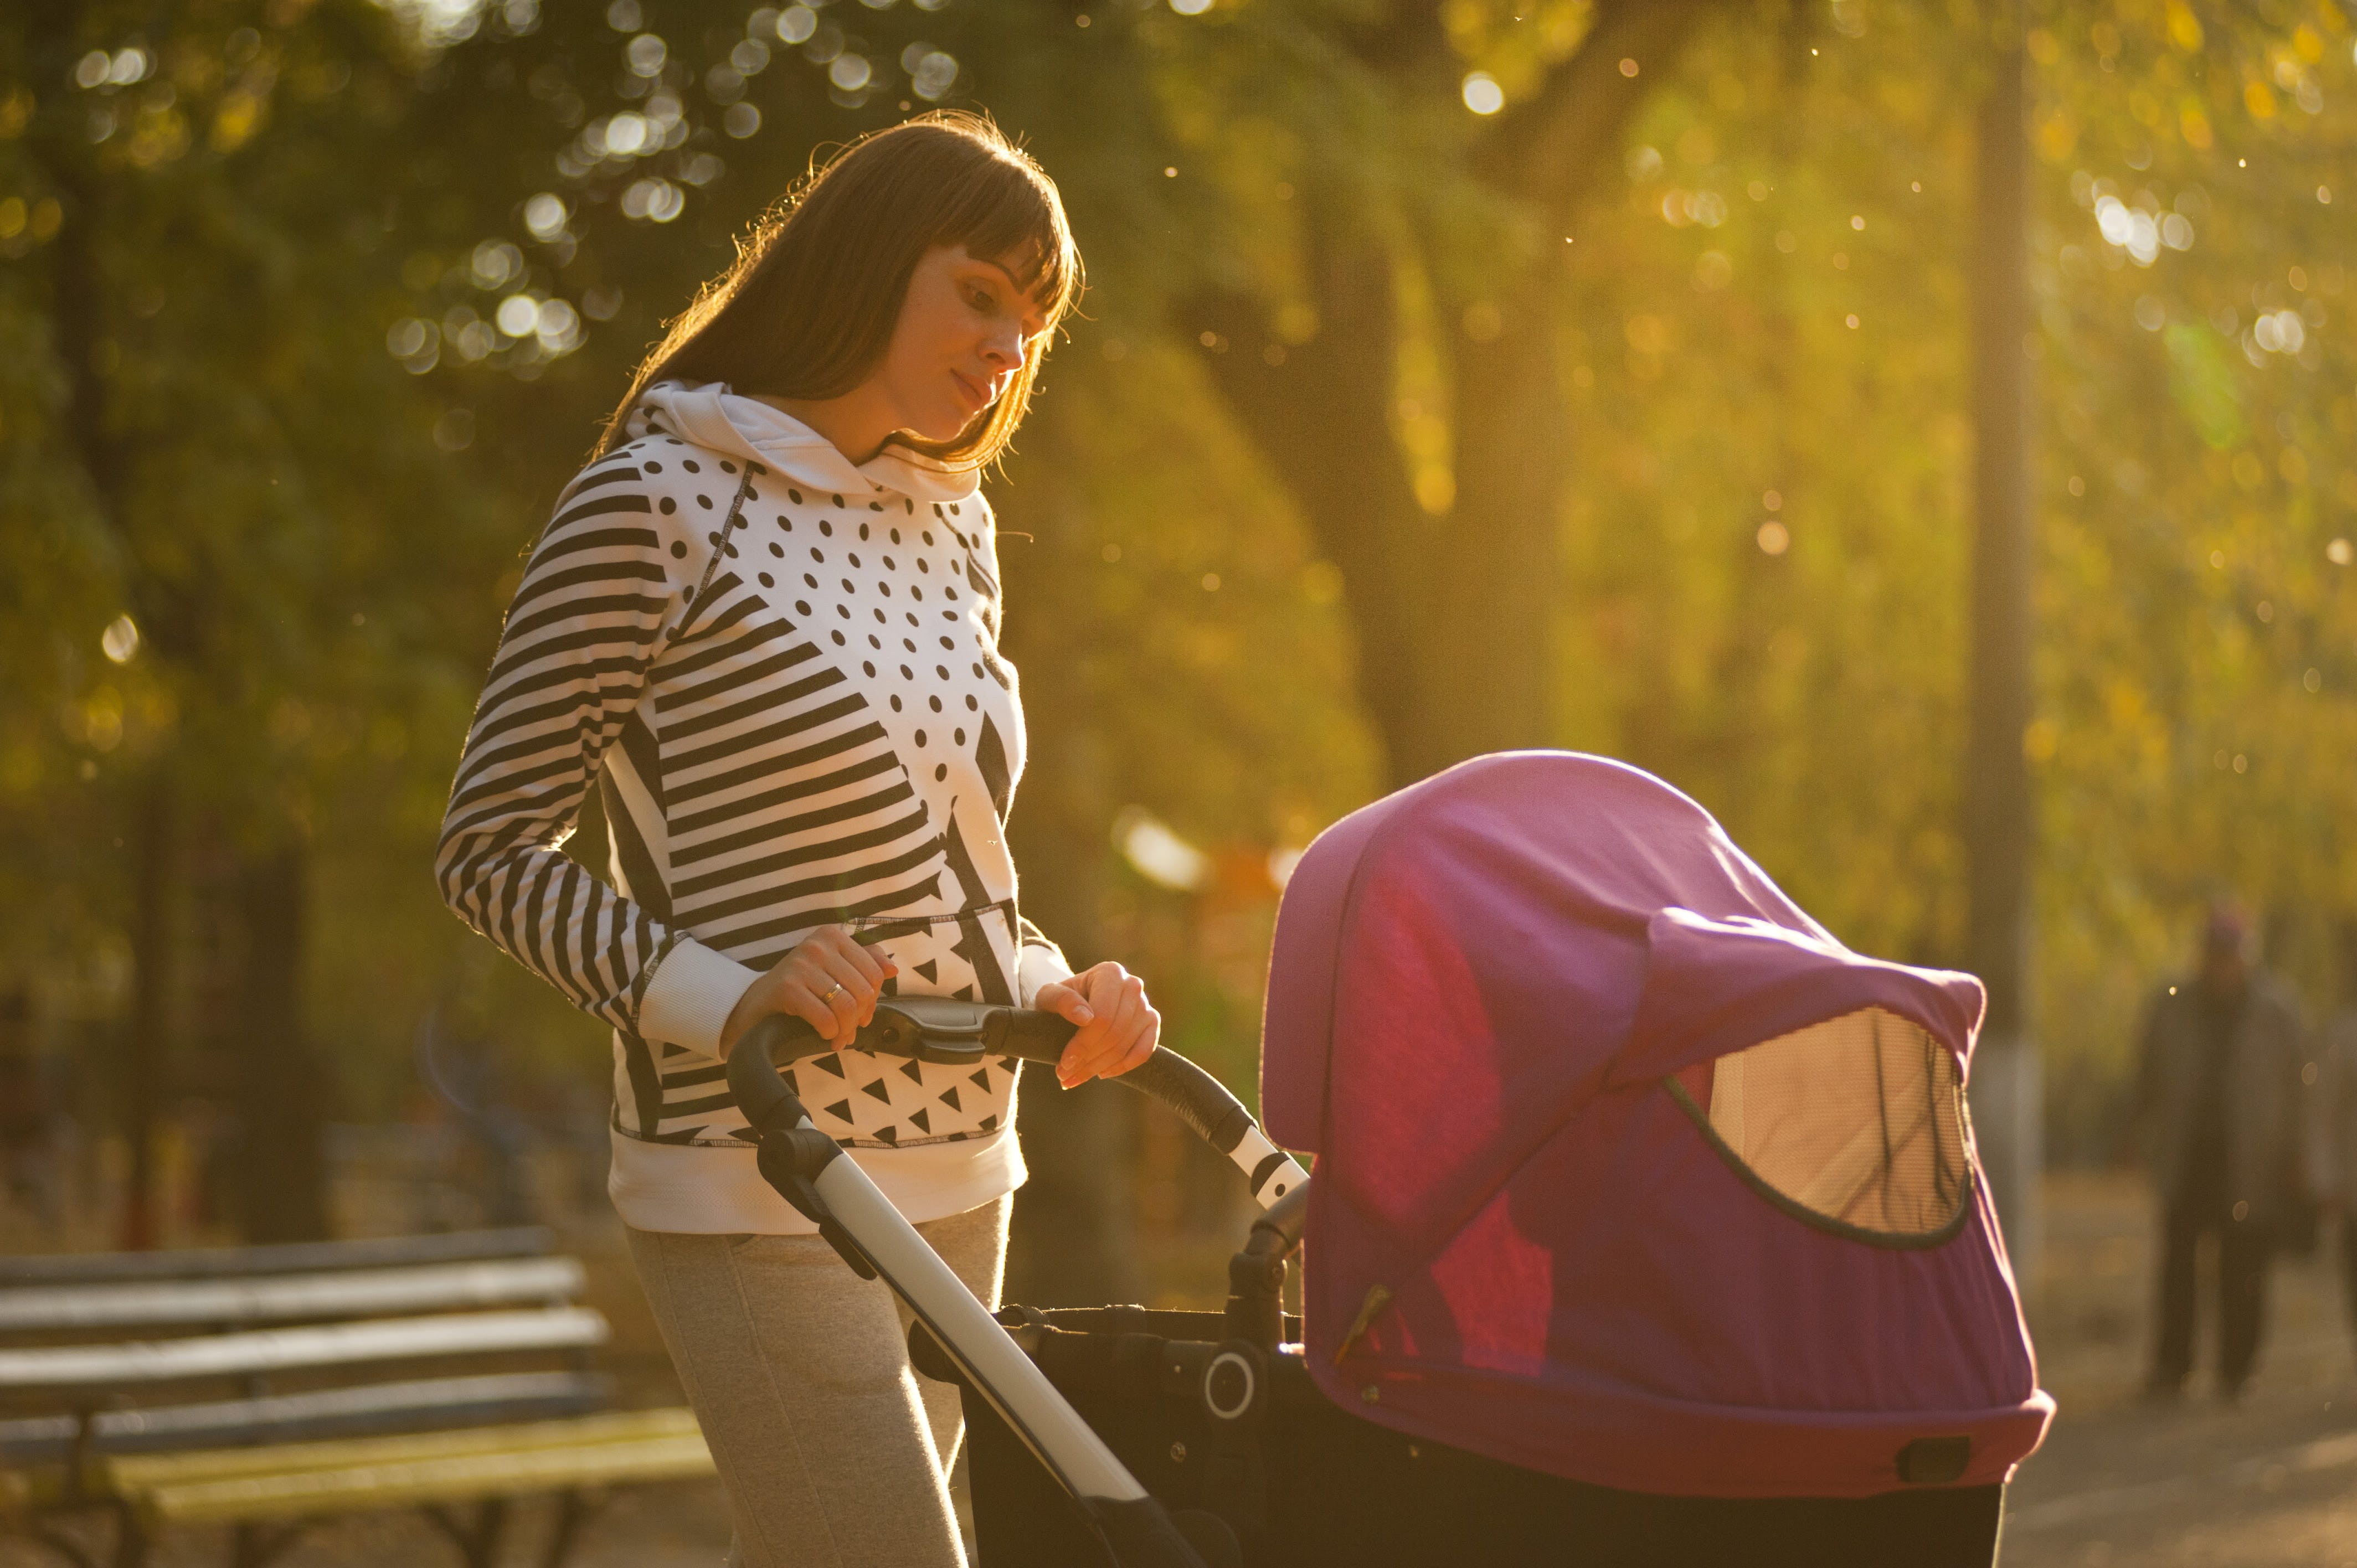 Woman Holding Pink And Black Stroller